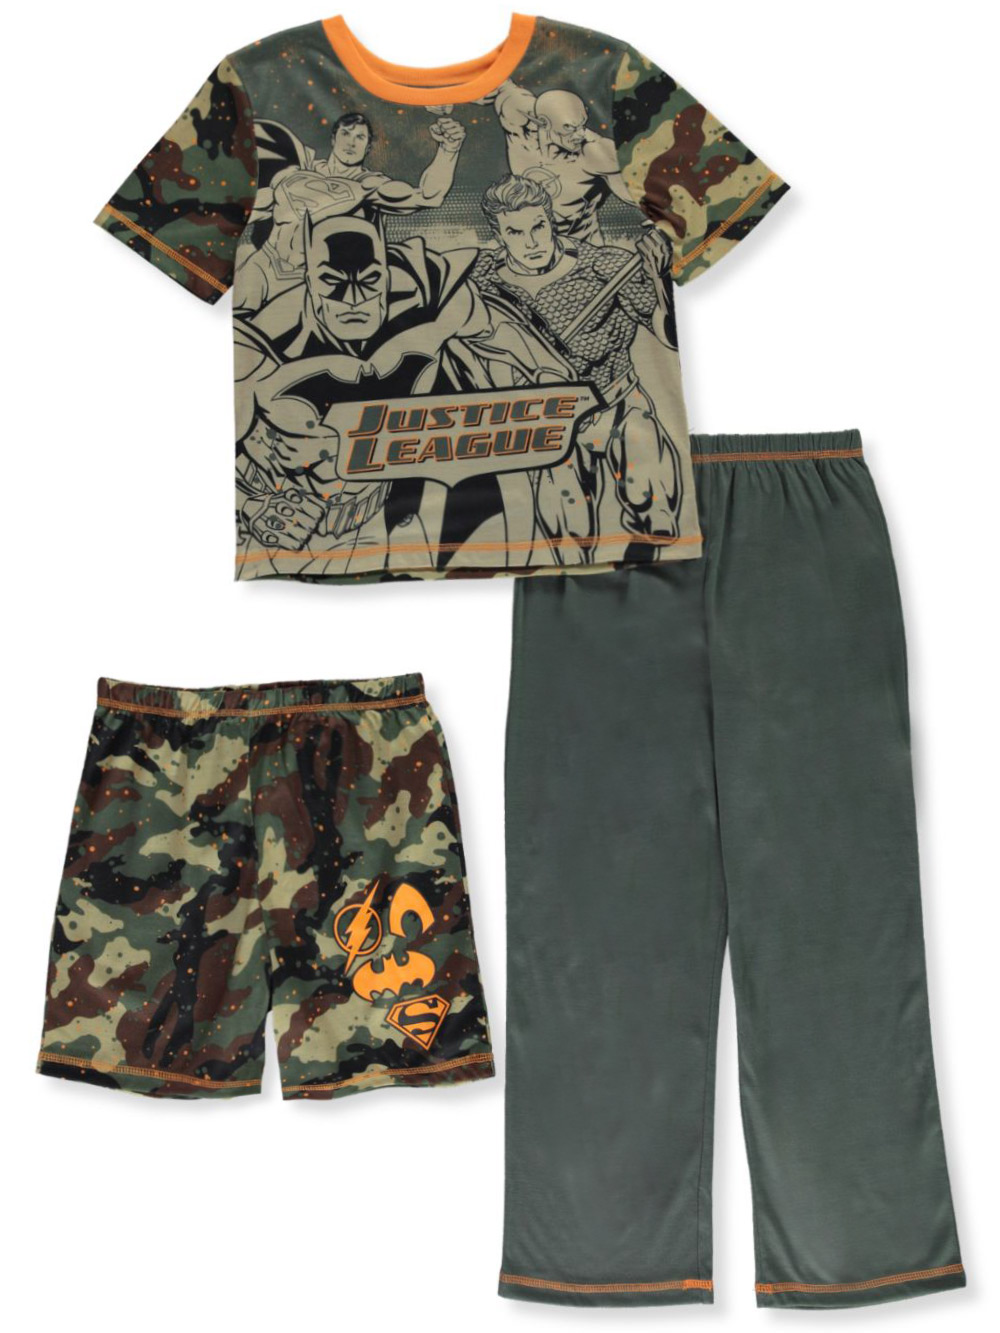 Justice League Sleepwear